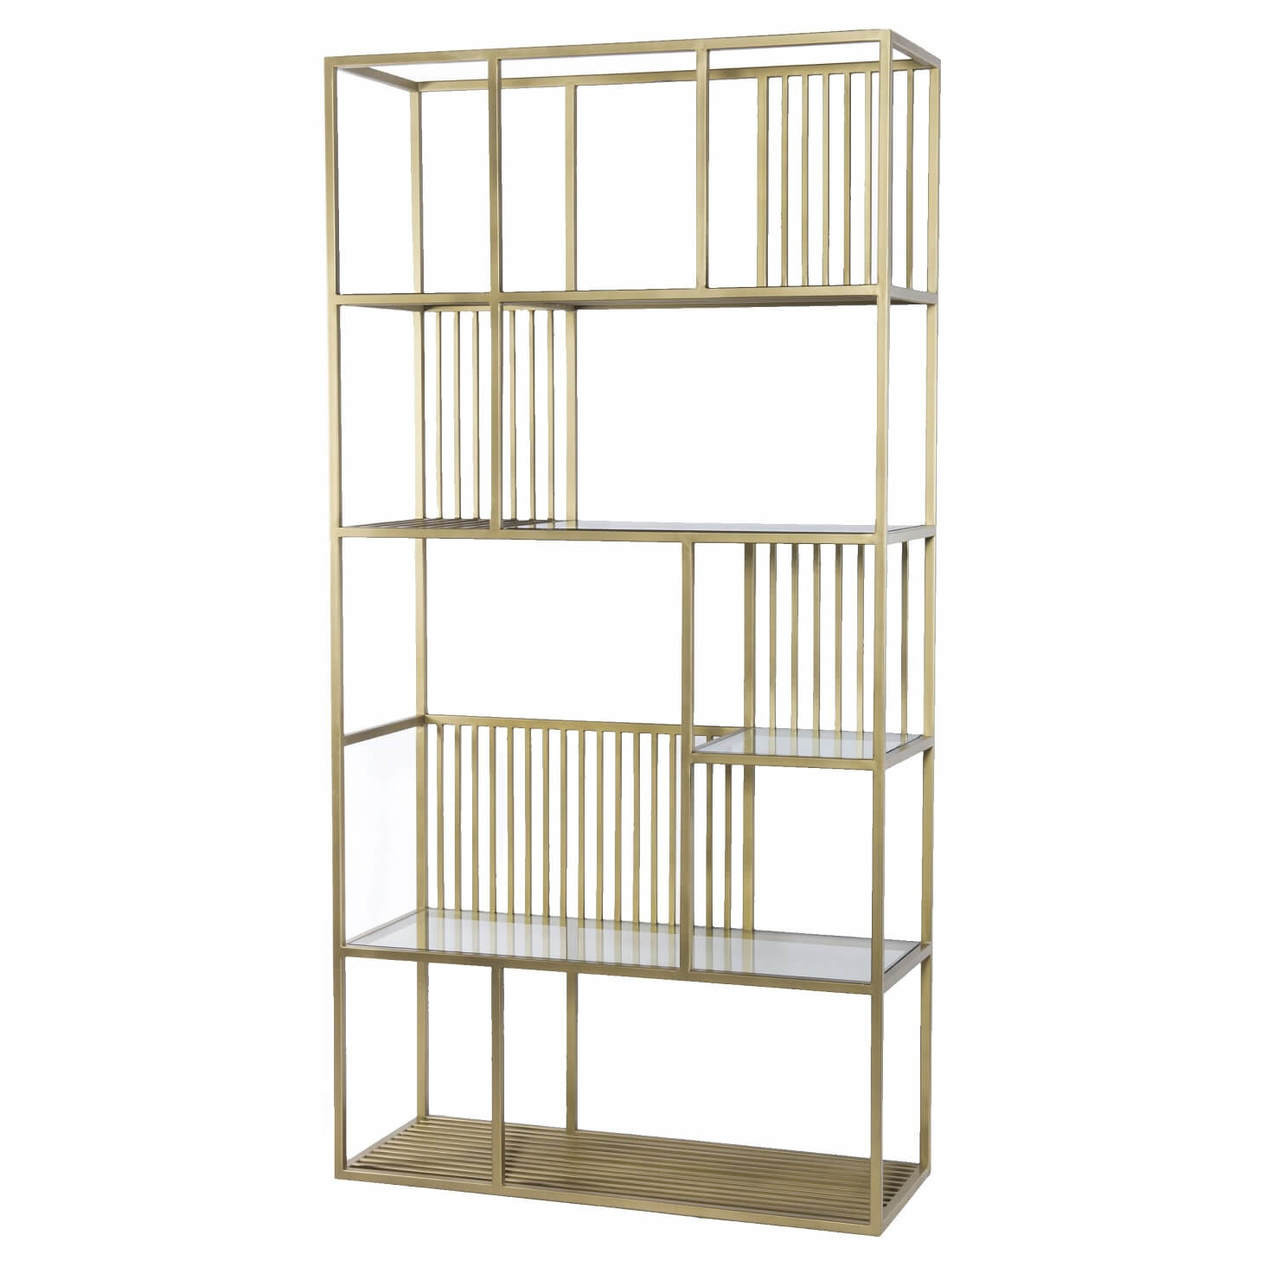 cage regency brass and glass shelf bookcase etagere 42 zin home rh zinhome com gold etagere with glass shelves gold etagere with glass shelves